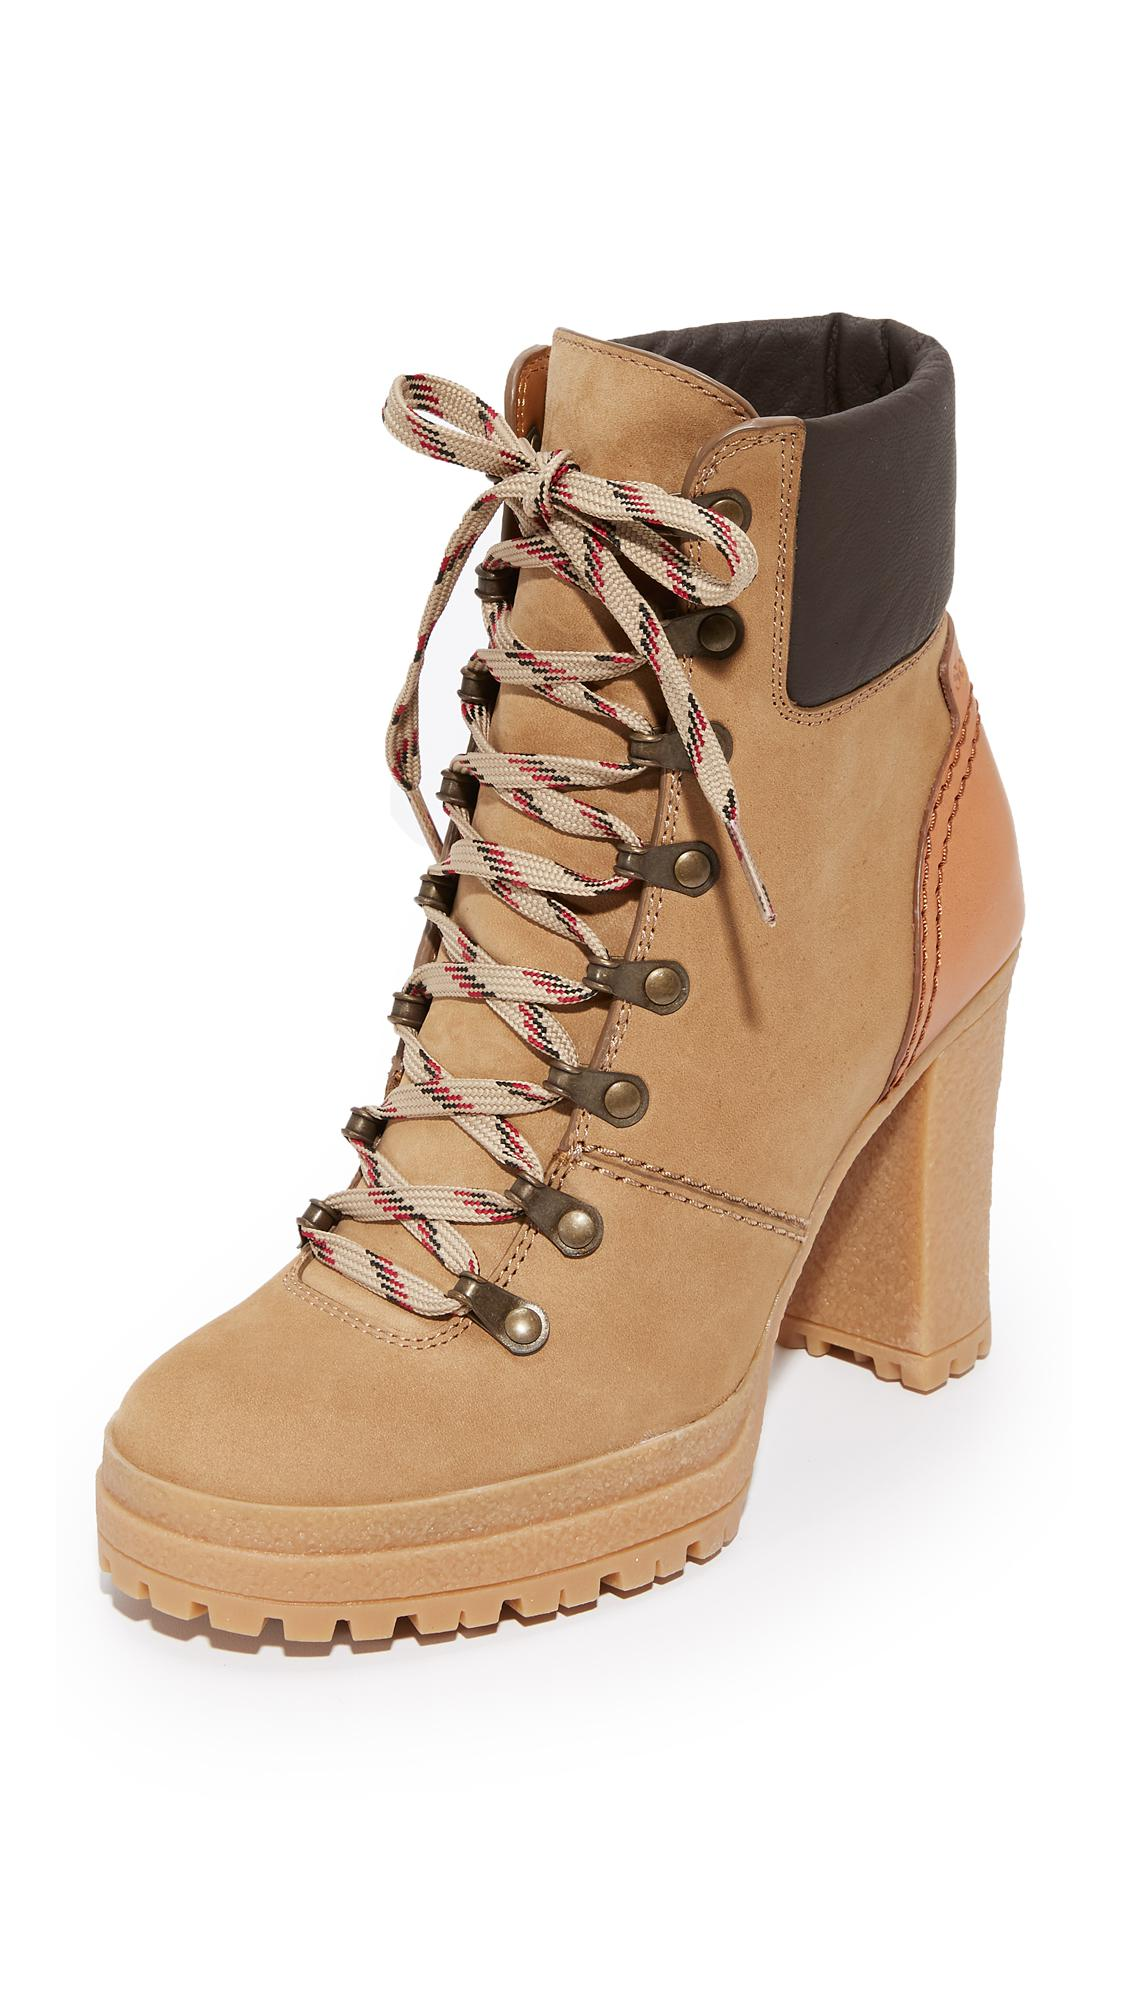 7502dc32cd78 Lyst - See By Chloé Eileen Lace Up Boots